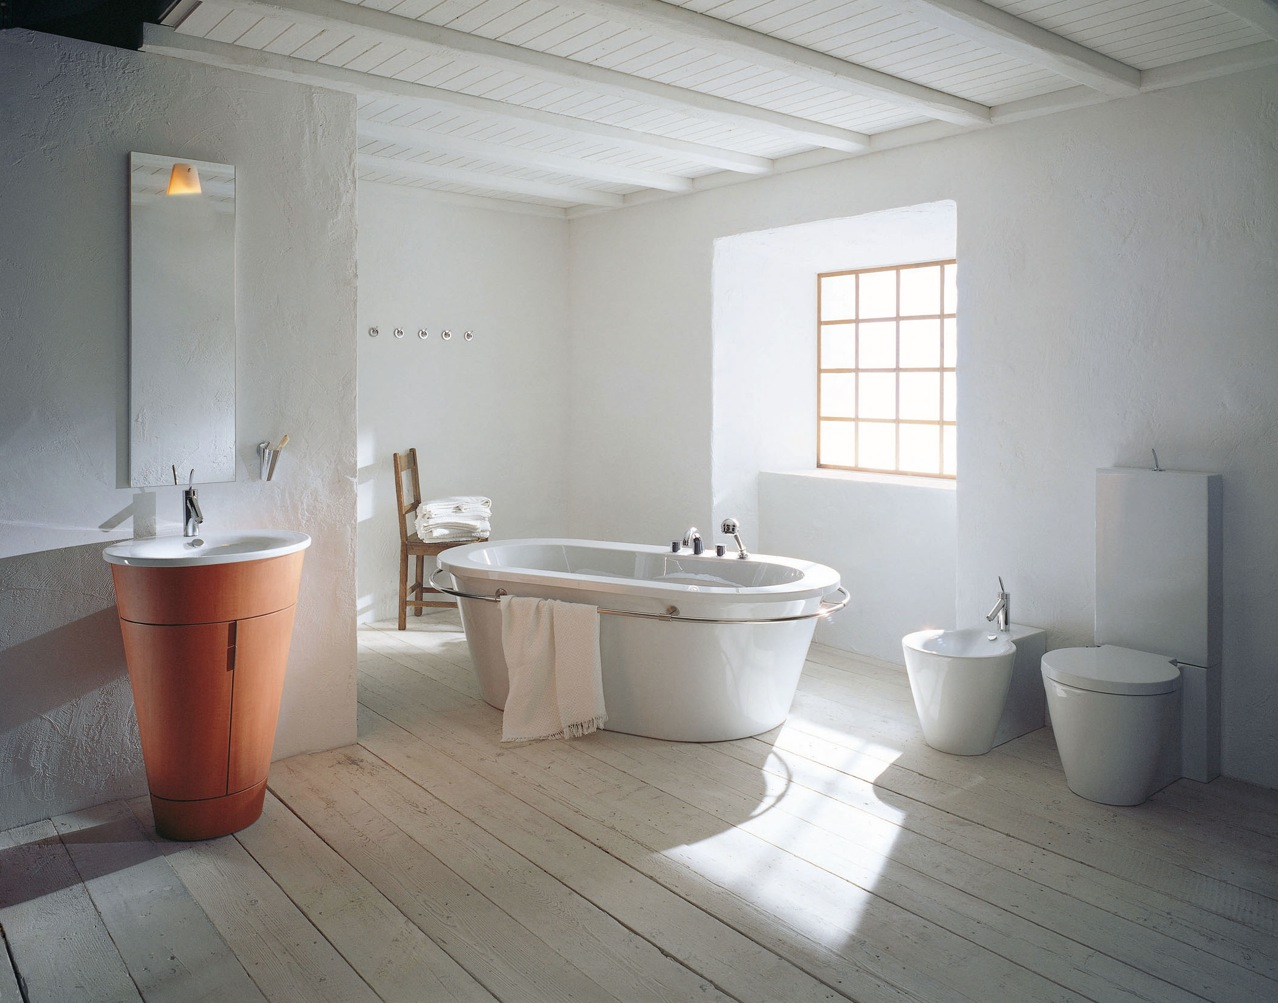 Philipe starck rustic modern bathroom decor interior for Toilet interior design